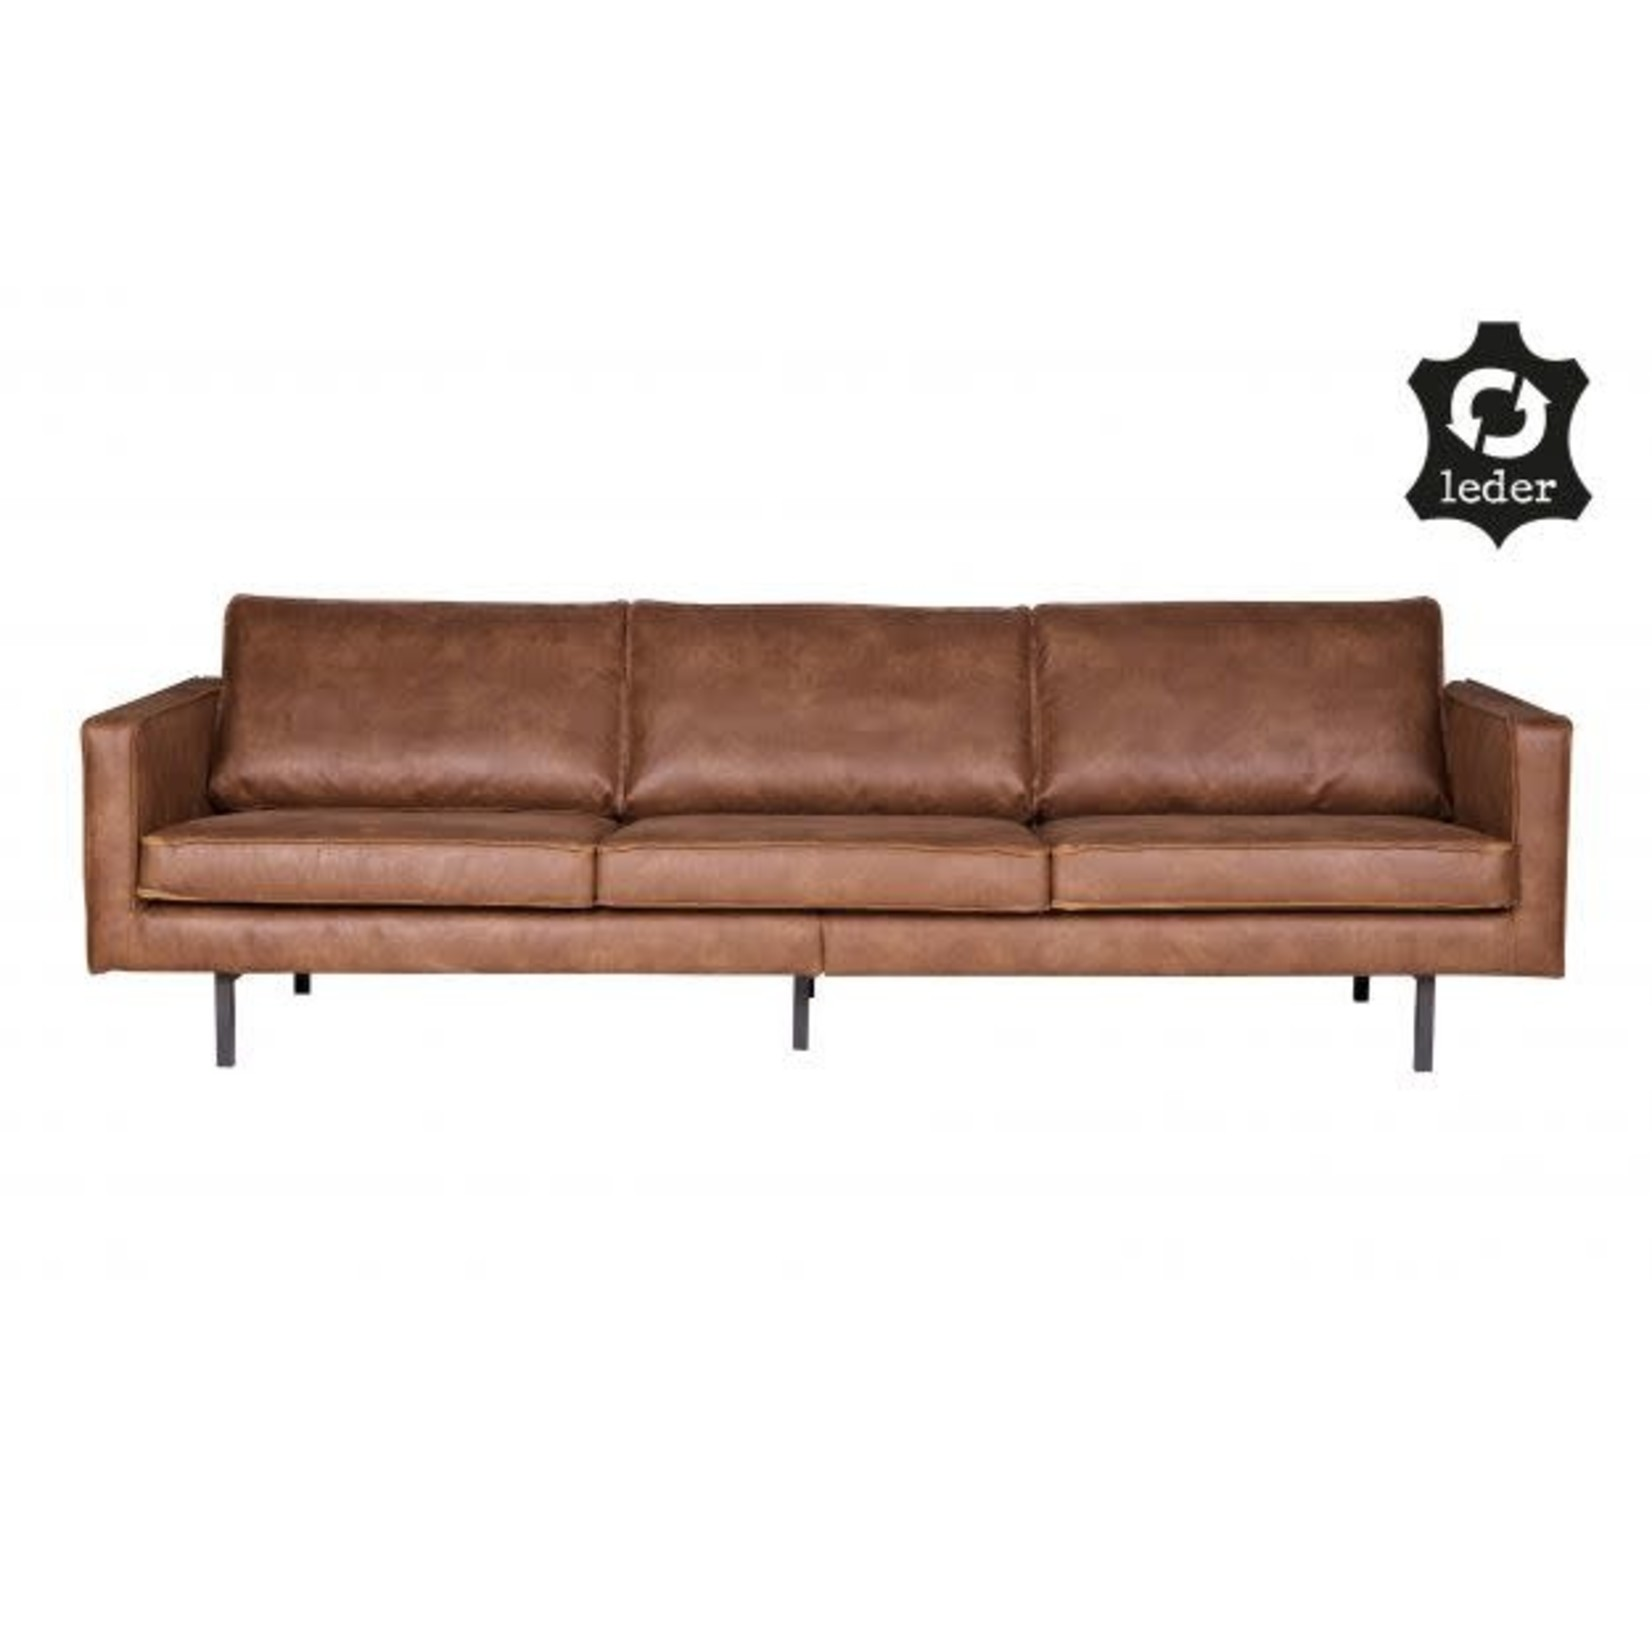 Be Pure Home Rodeo Bank 3-zits Cognac